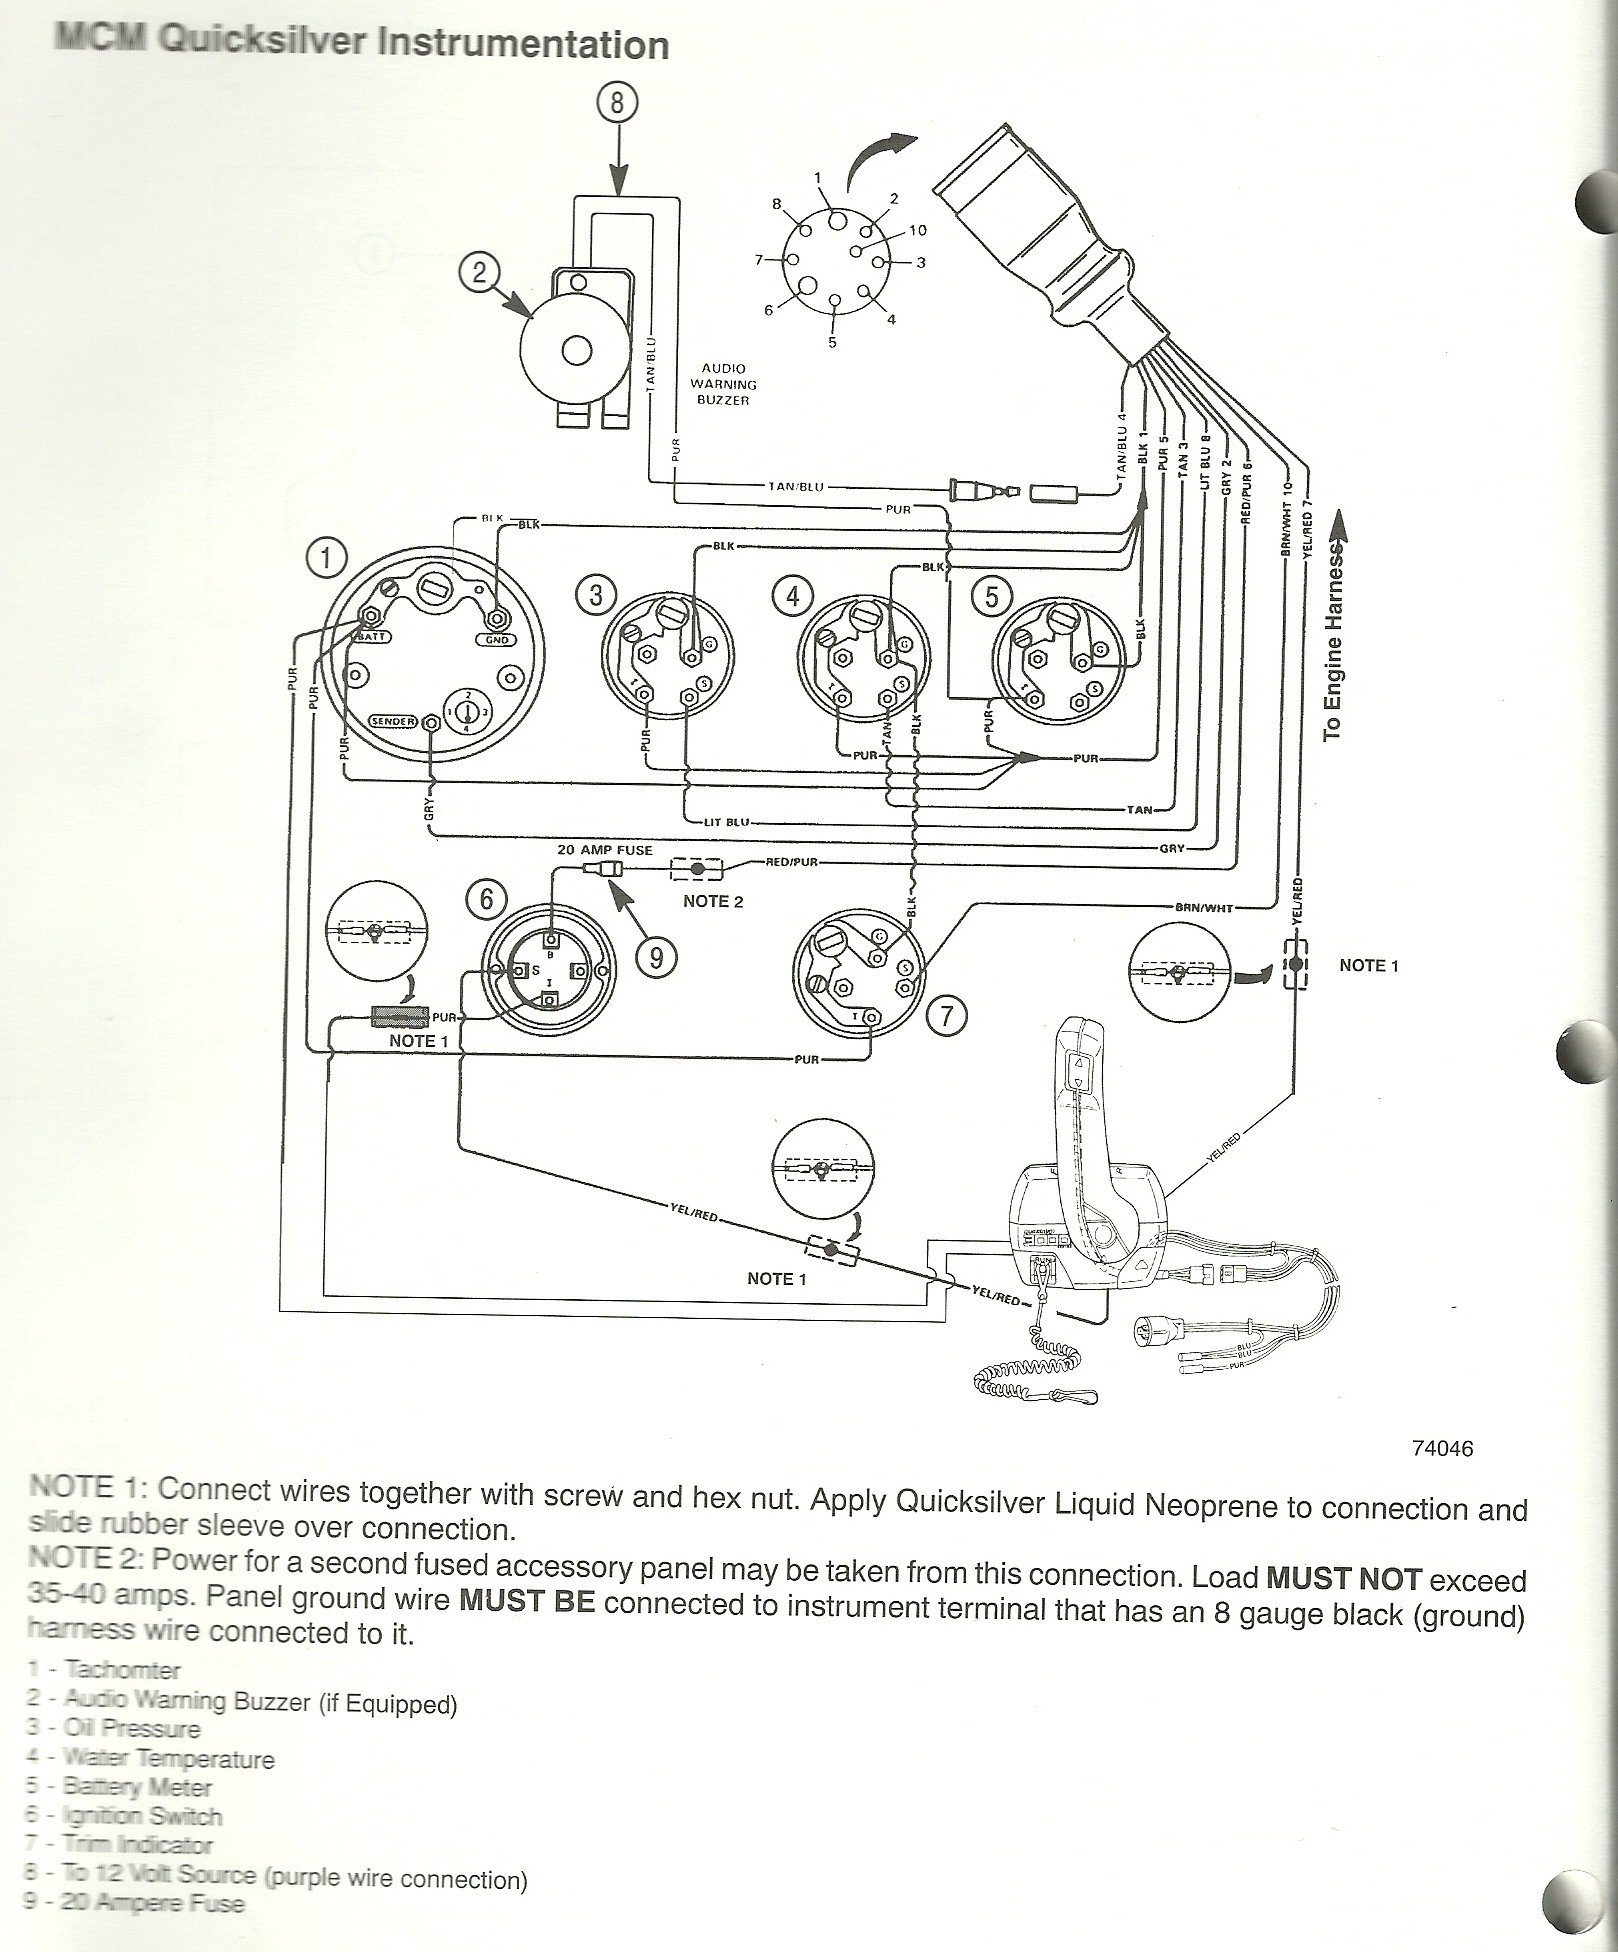 Wiring Diagrams Craft Lancer 20  Not Getting Ignition Power There Is A Purple Wire On The